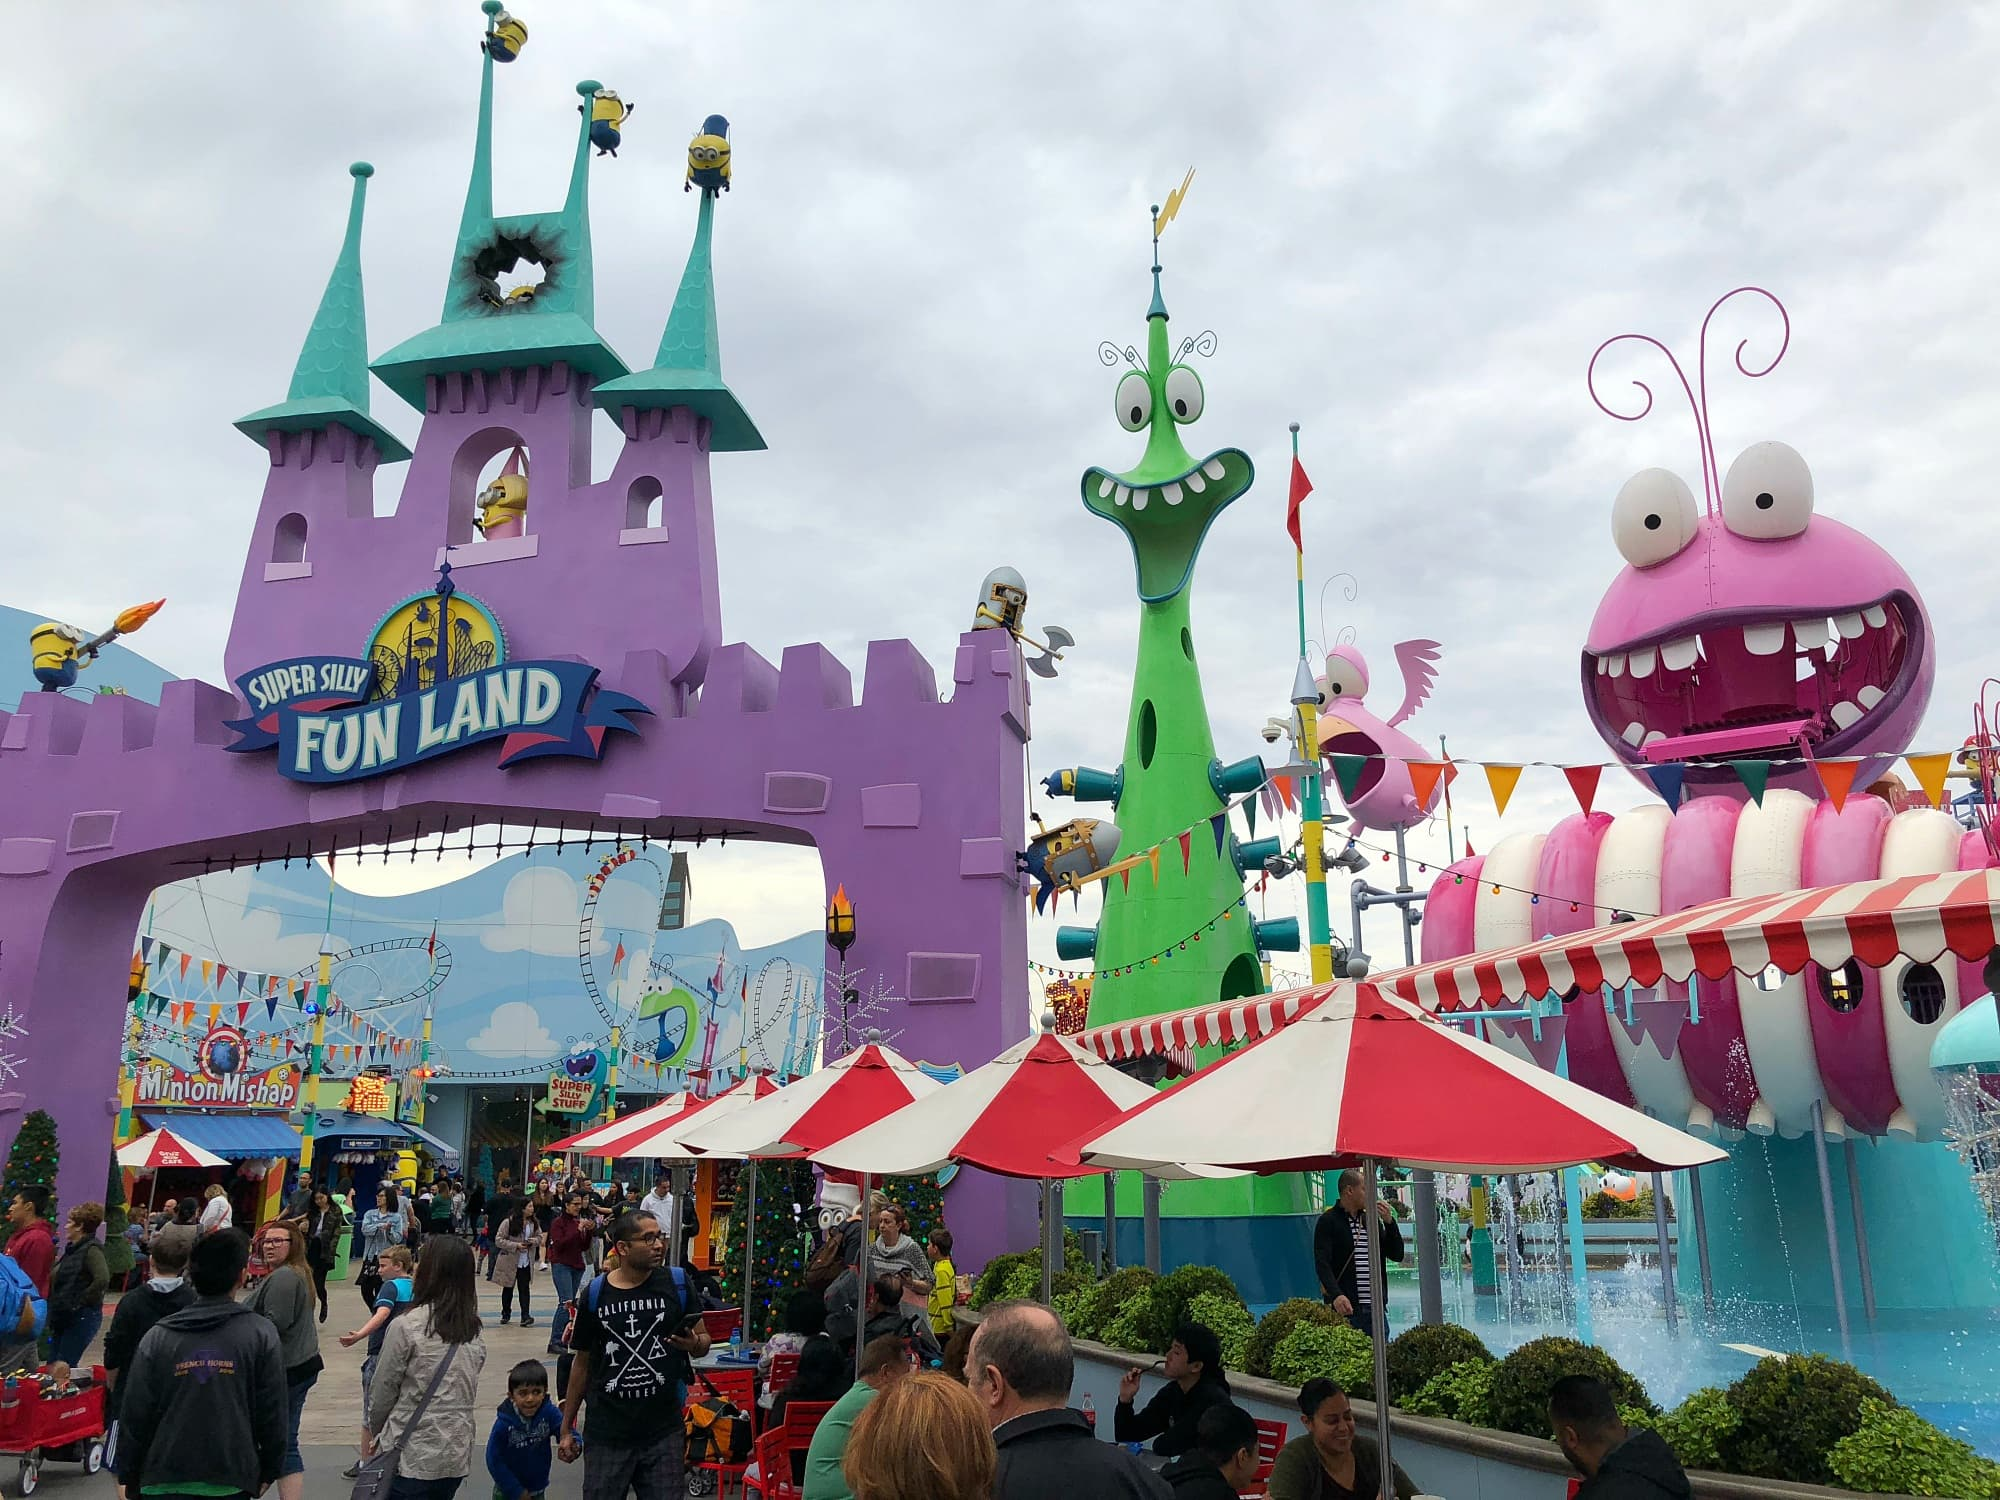 Super Silly Fun Land is a super splashy place at Universal Hollywood with kids